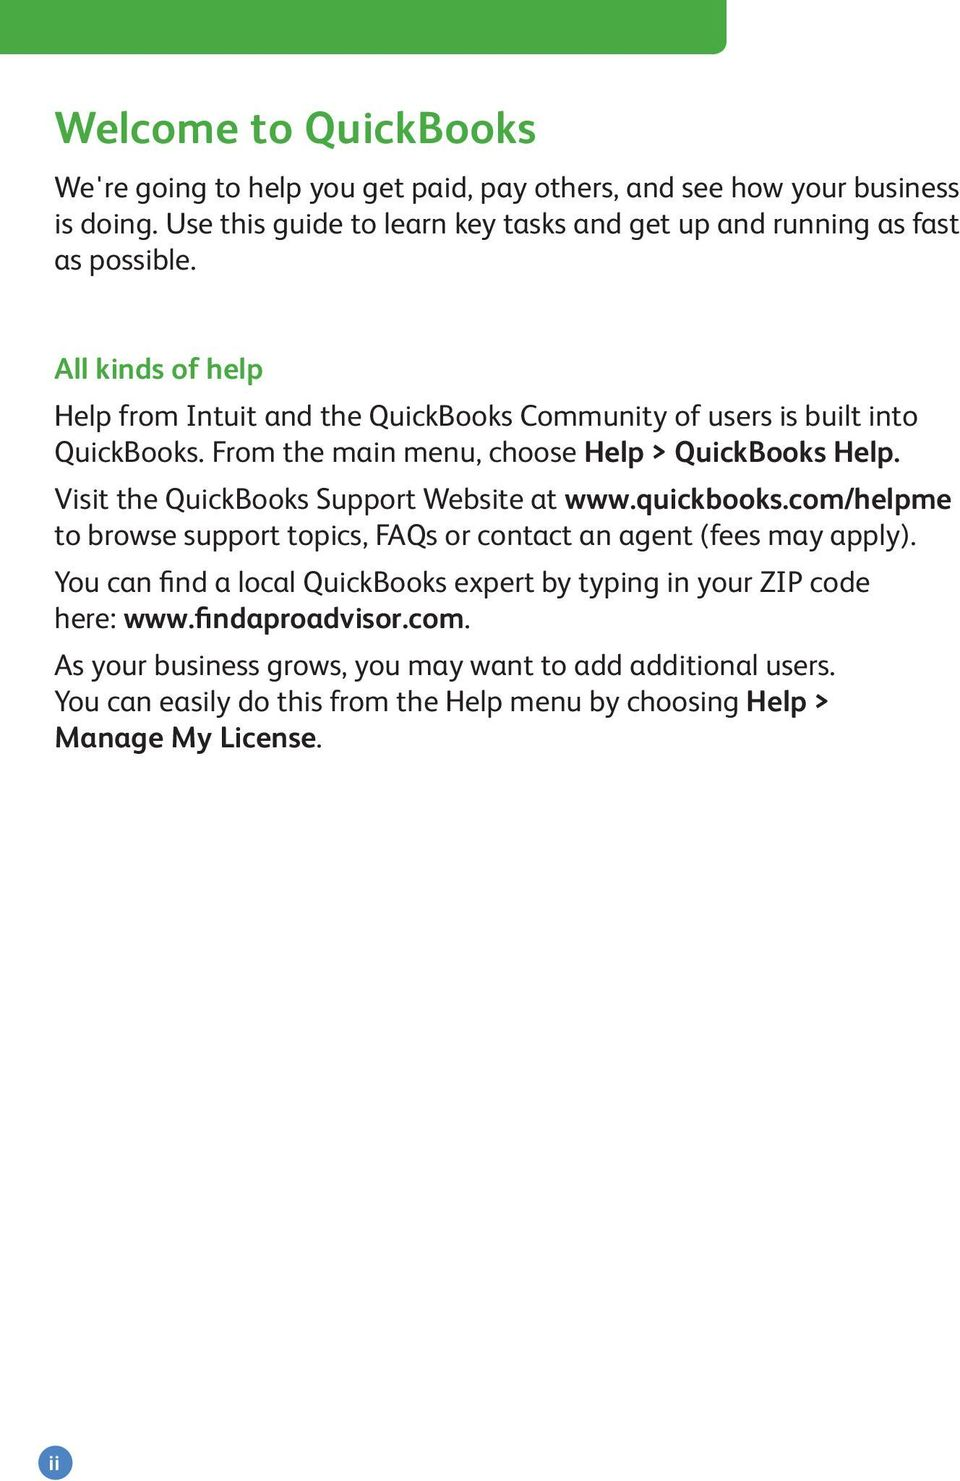 From the main menu, choose Help > QuickBooks Help. Visit the QuickBooks Support Website at www.quickbooks.